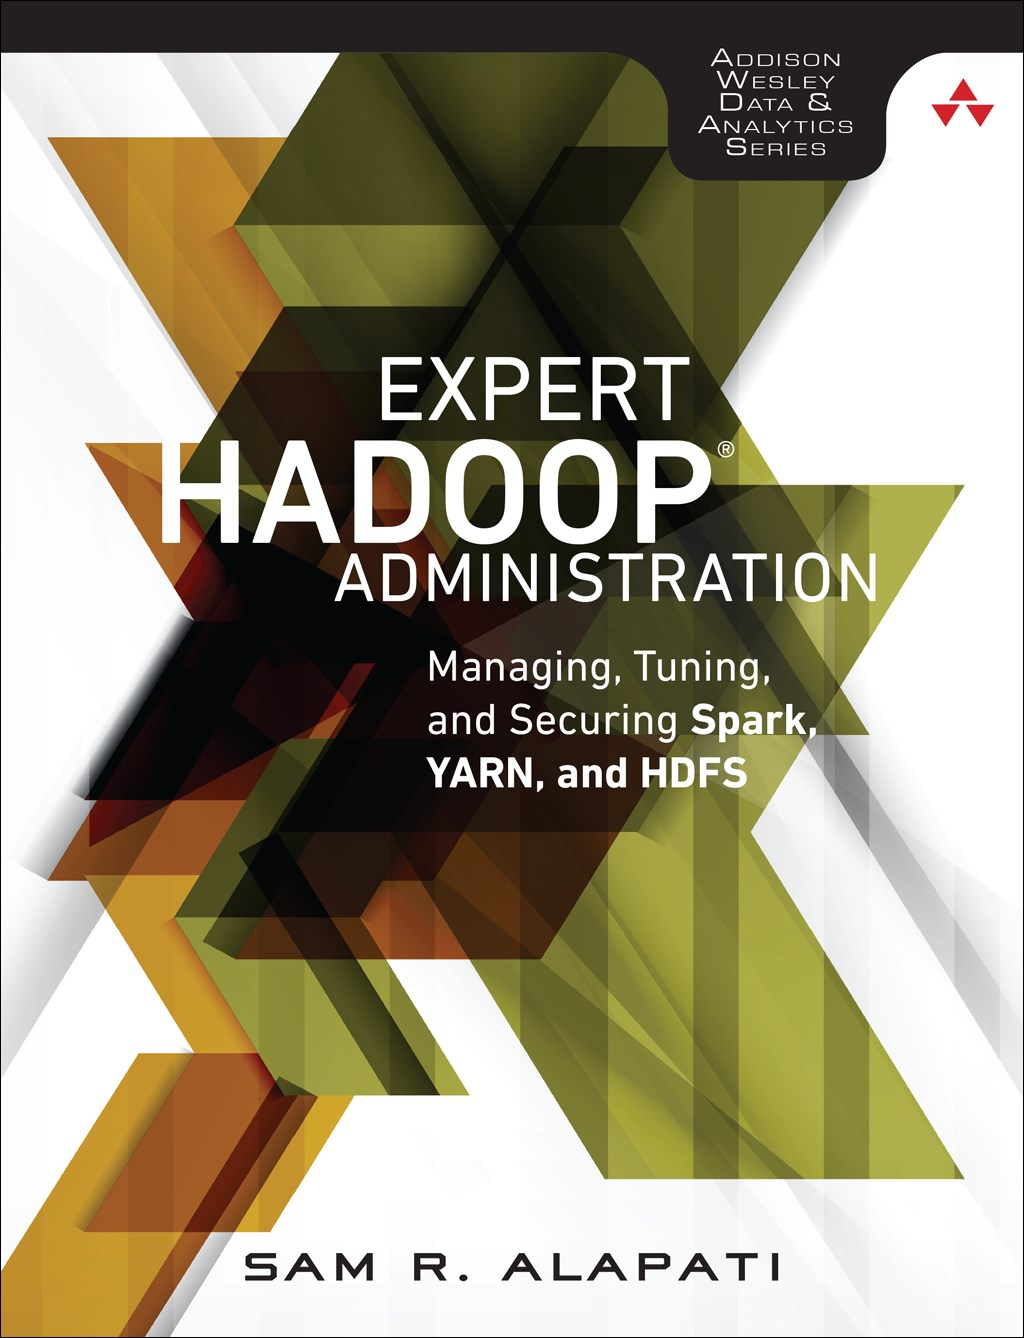 Expert Hadoop Administration: Managing, Tuning, and Securing Spark, YARN, and HDFS